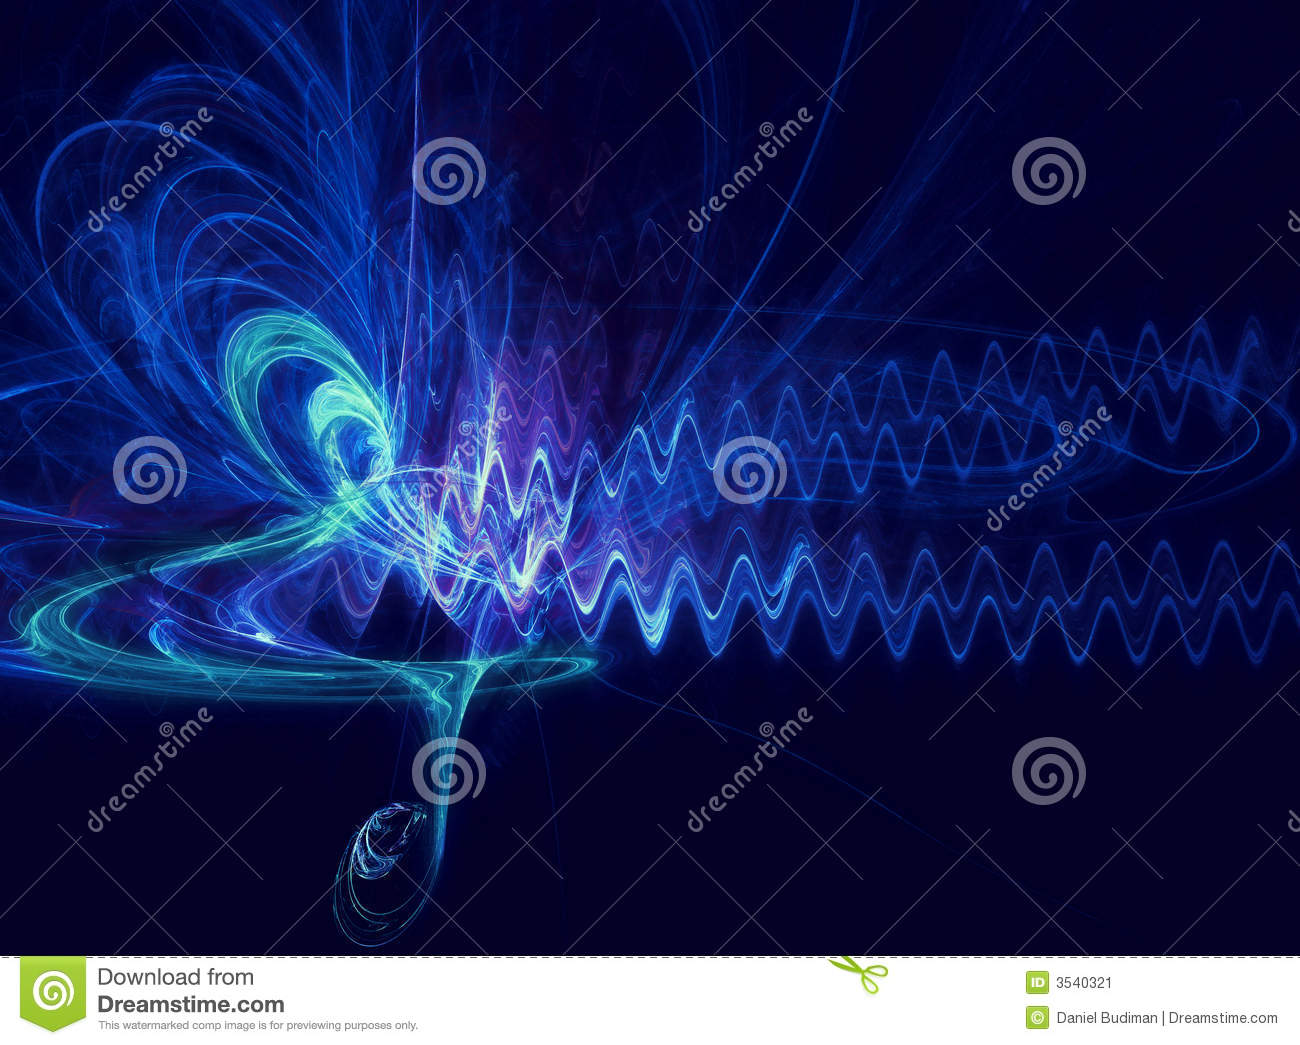 Abstract soundwave